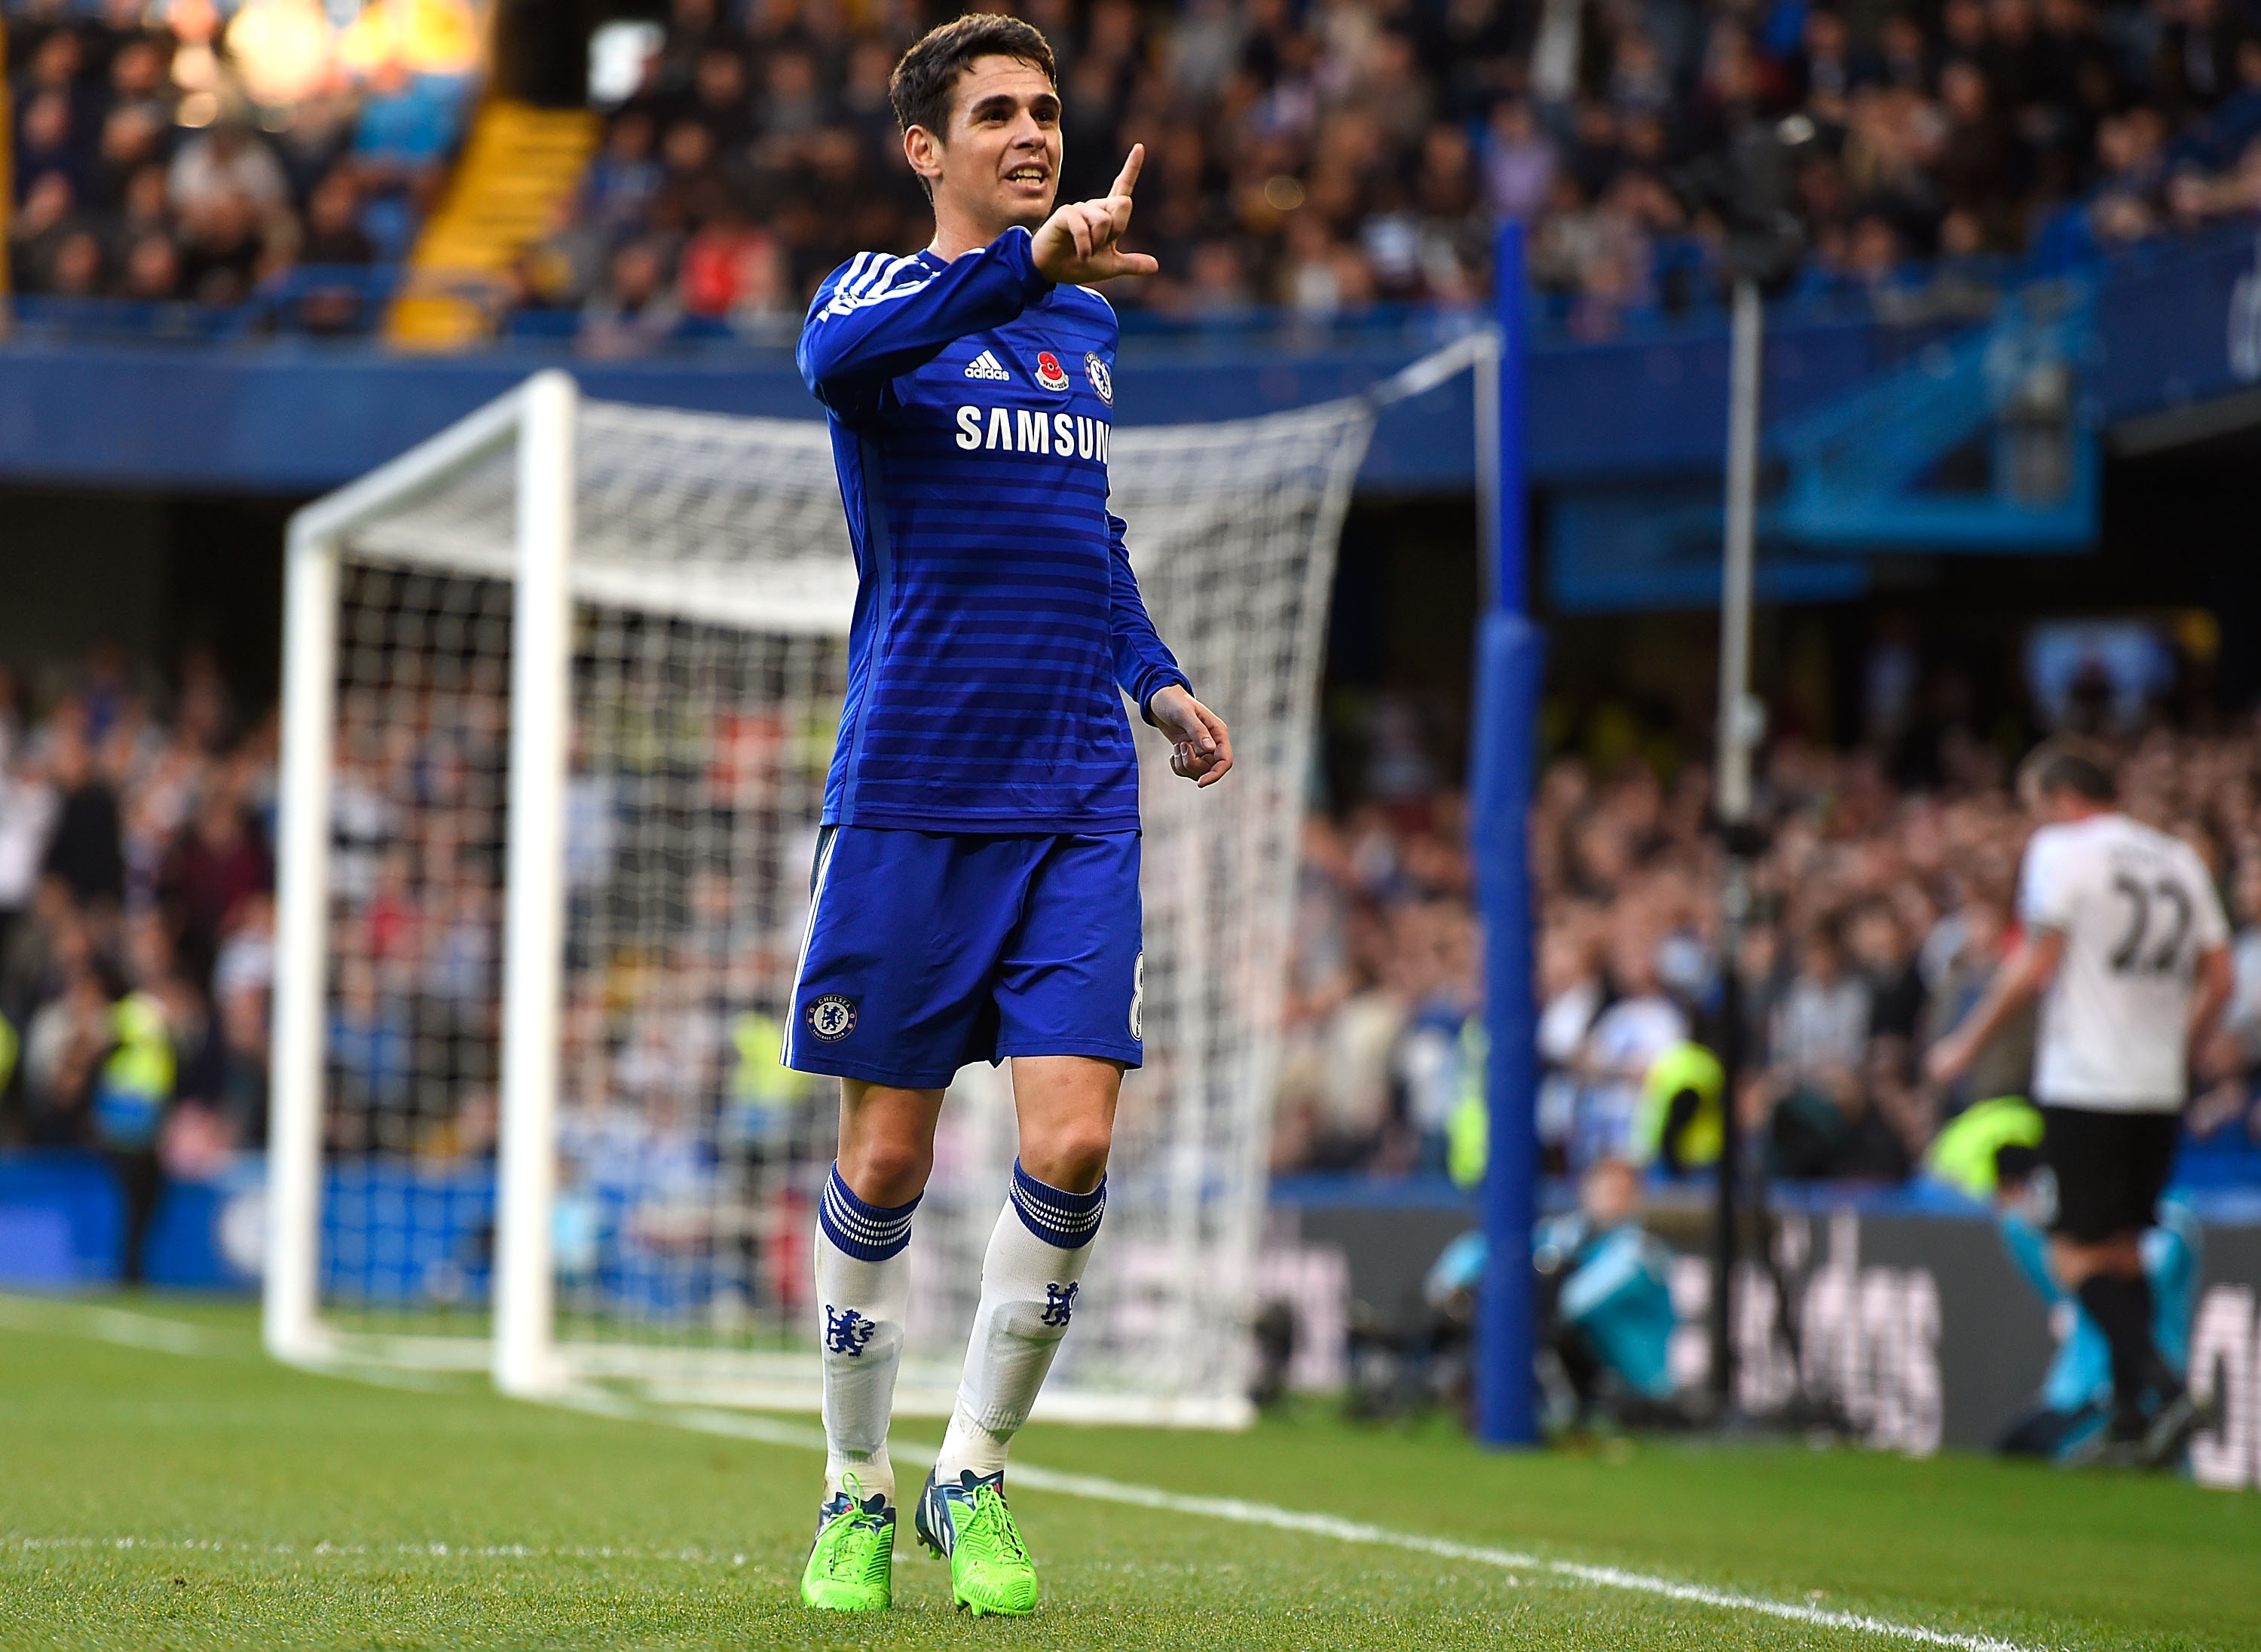 LONDON, ENGLAND - NOVEMBER 01: Oscar of Chelsea celebrates scoring the opening goal during the Barclays Premier League match between Chelsea and Queens Park Rangers at Stamford Bridge on November 1, 2014 in London, England. (Photo by Mike Hewitt/Getty Images)